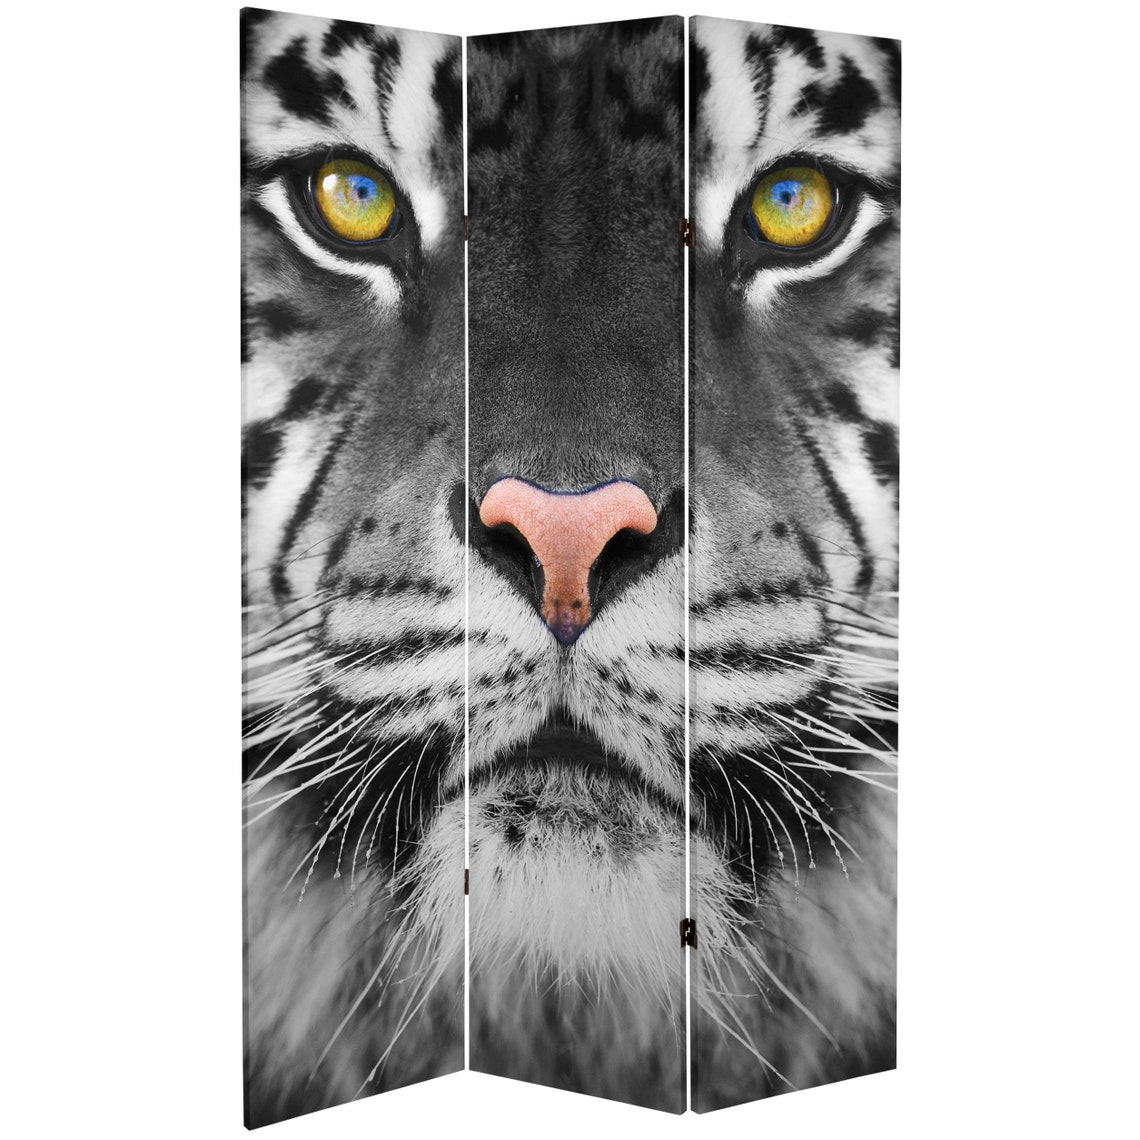 6 ft. Tall Double Sided Tiger Room Divider